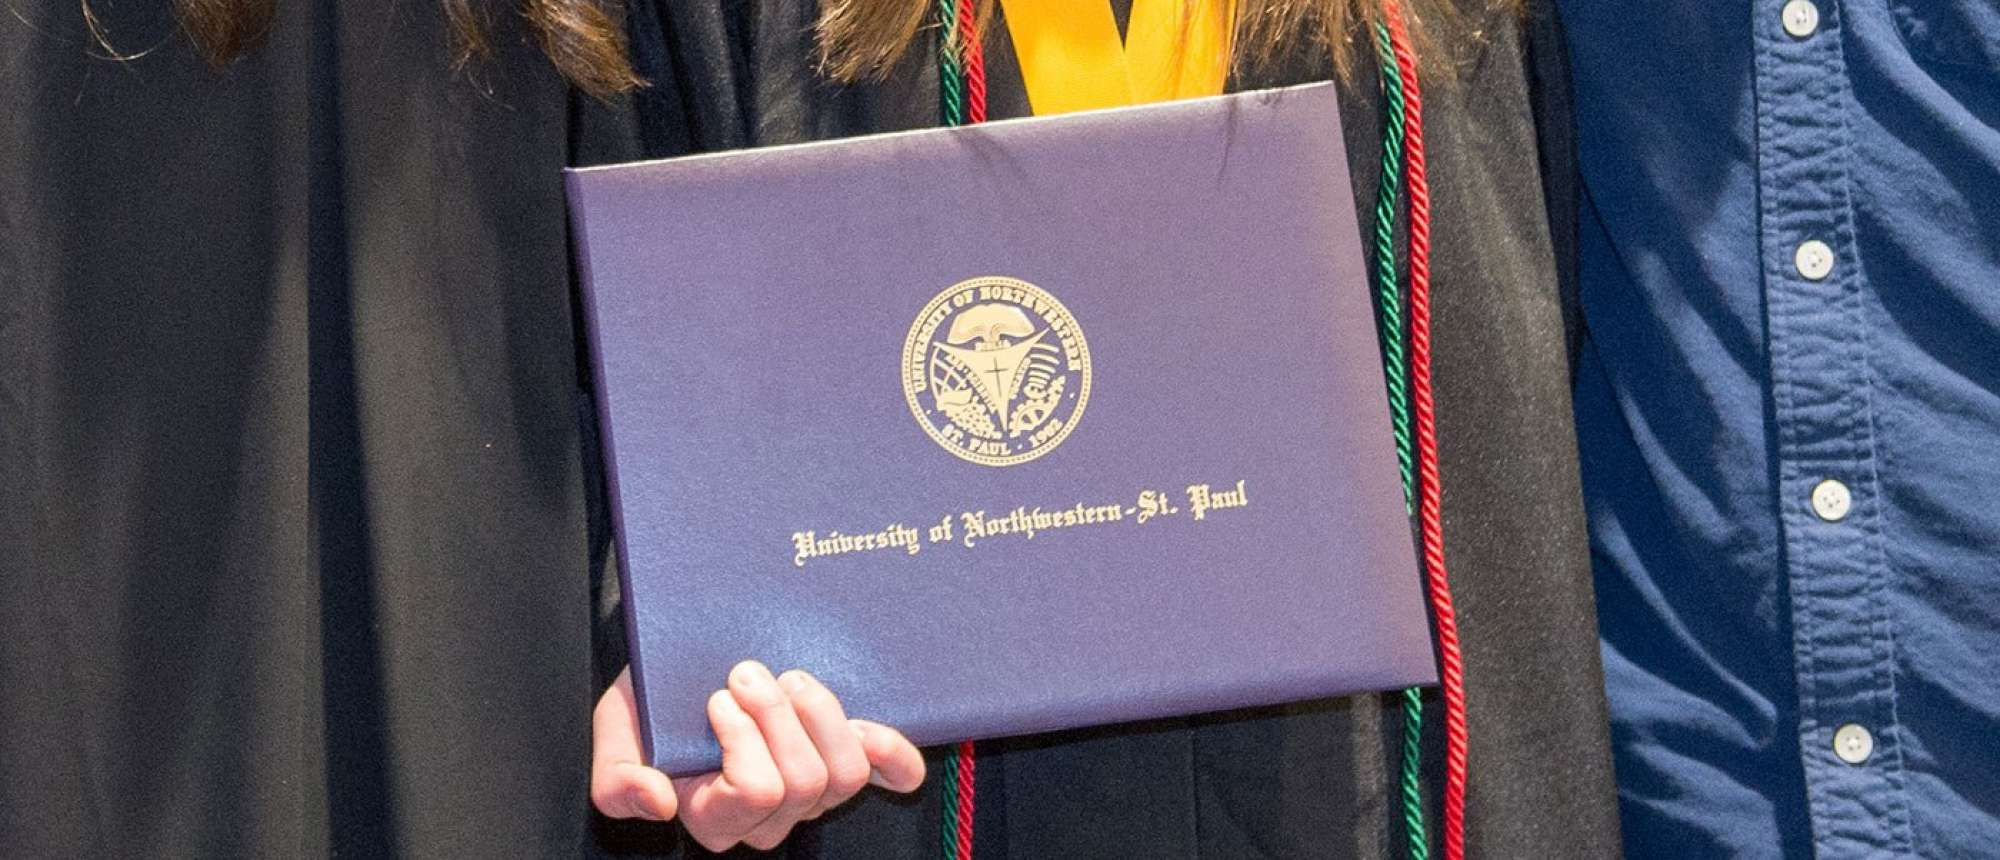 Graduate holding her degree certificate.